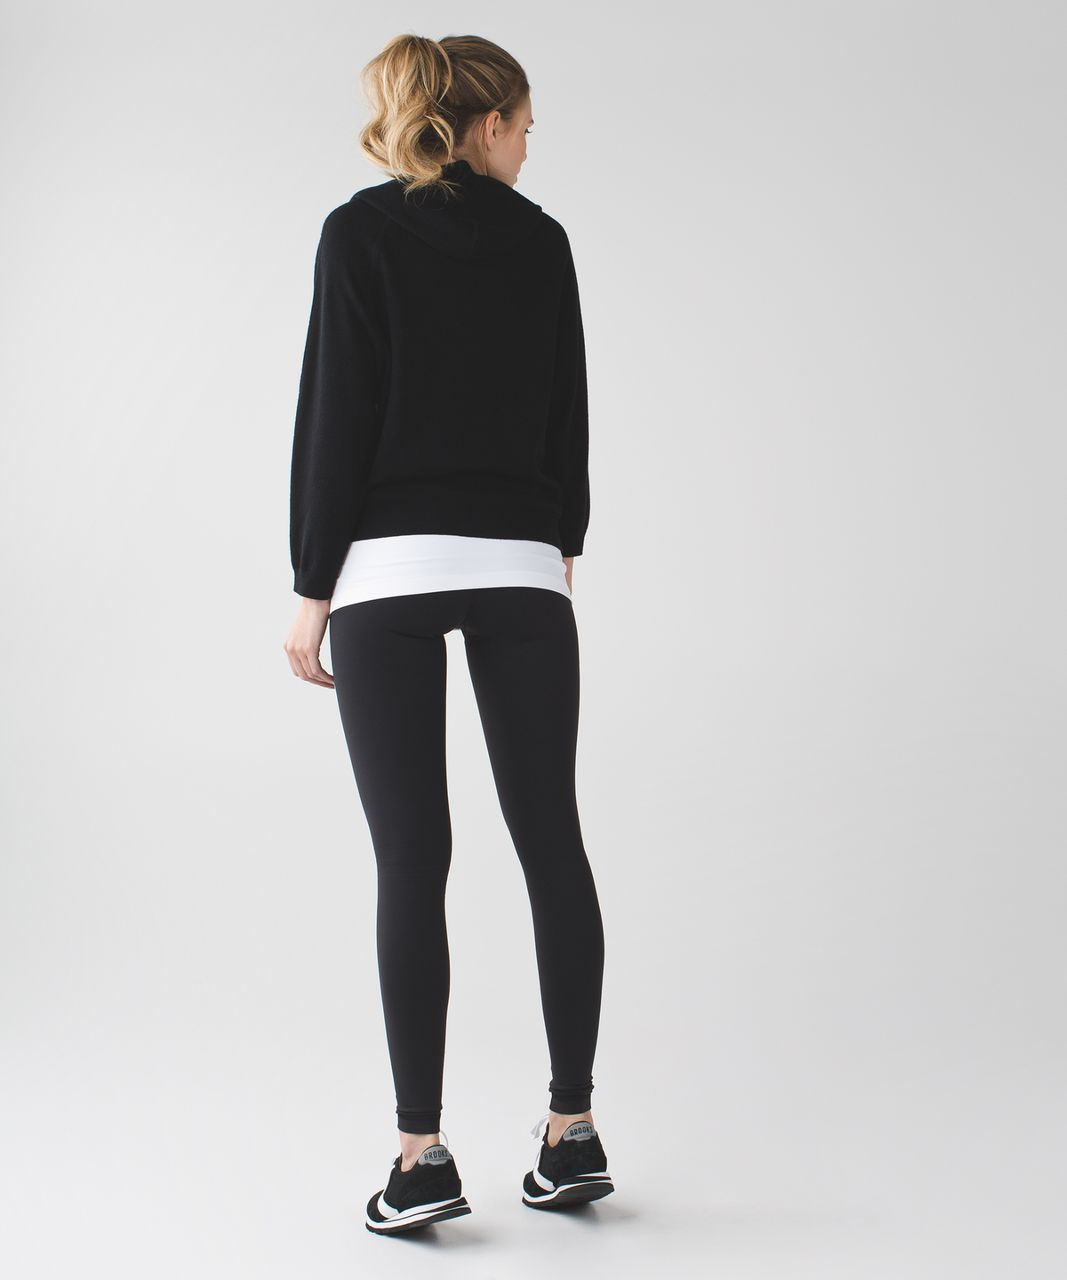 Lululemon Wunder Under Pant III - Black